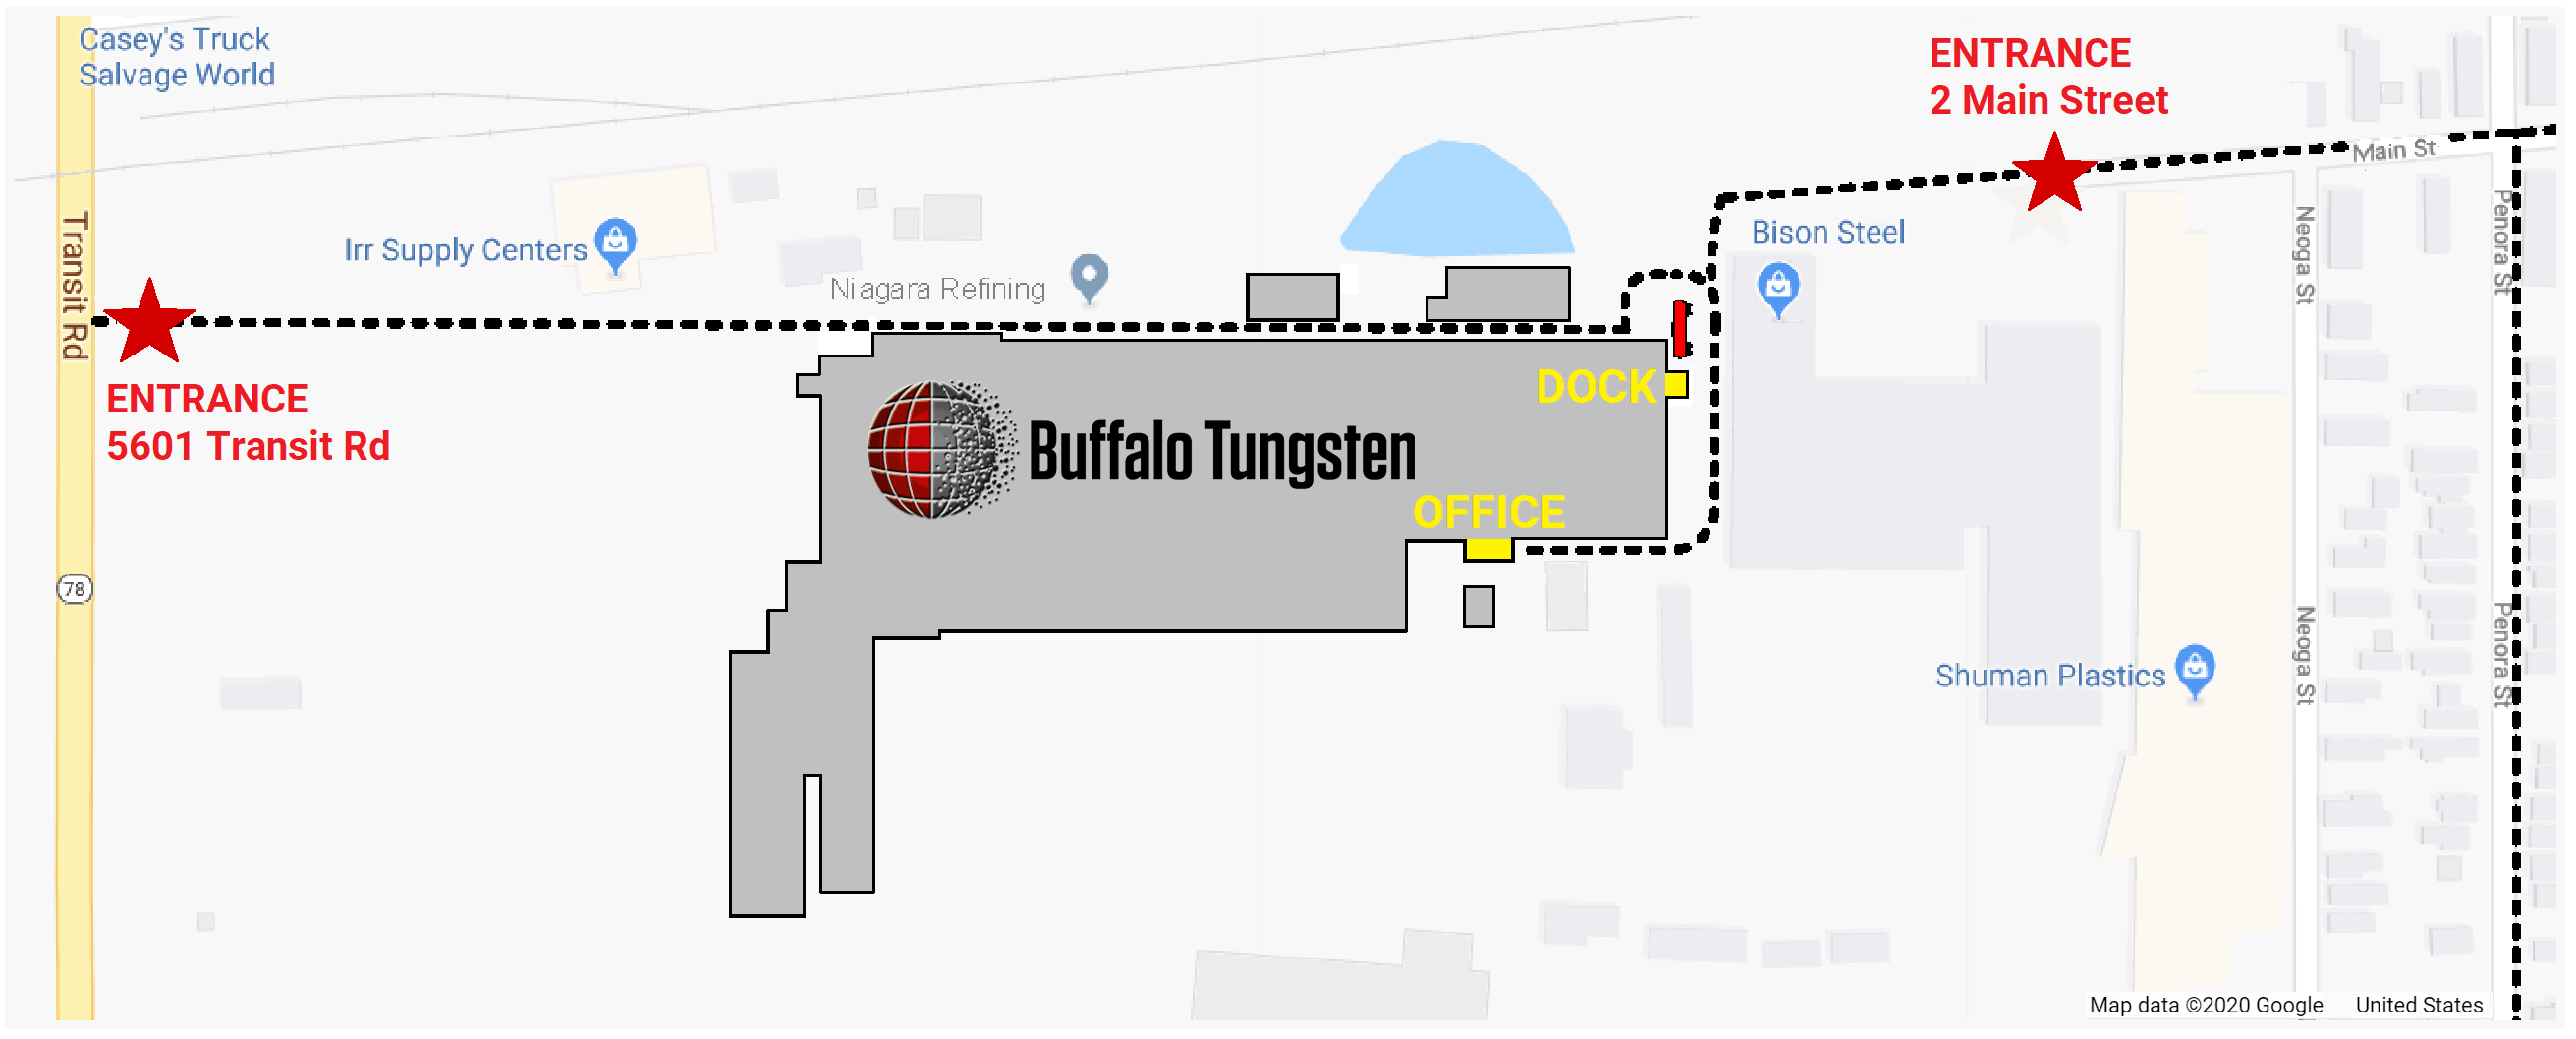 Buffalo Tungsten Directions on Site Map without Border